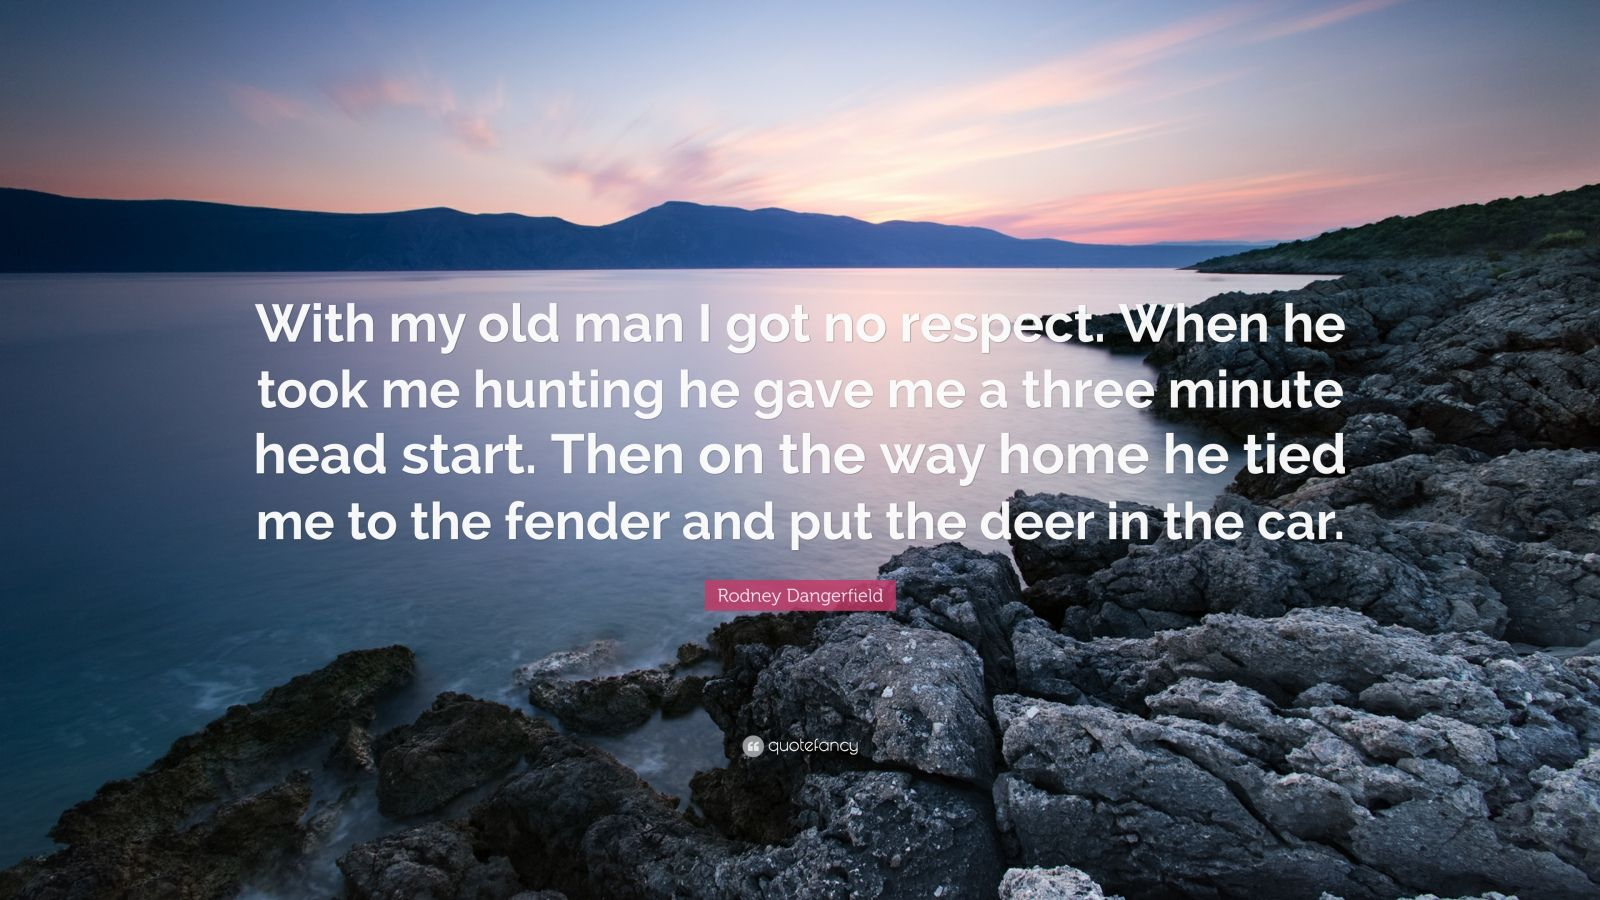 "Rodney Dangerfield Quote: ""With my old man I got no respect. When he took me hunting he gave me a three minute head start. Then on the way home he tied me to the fender and put the deer in the car."""